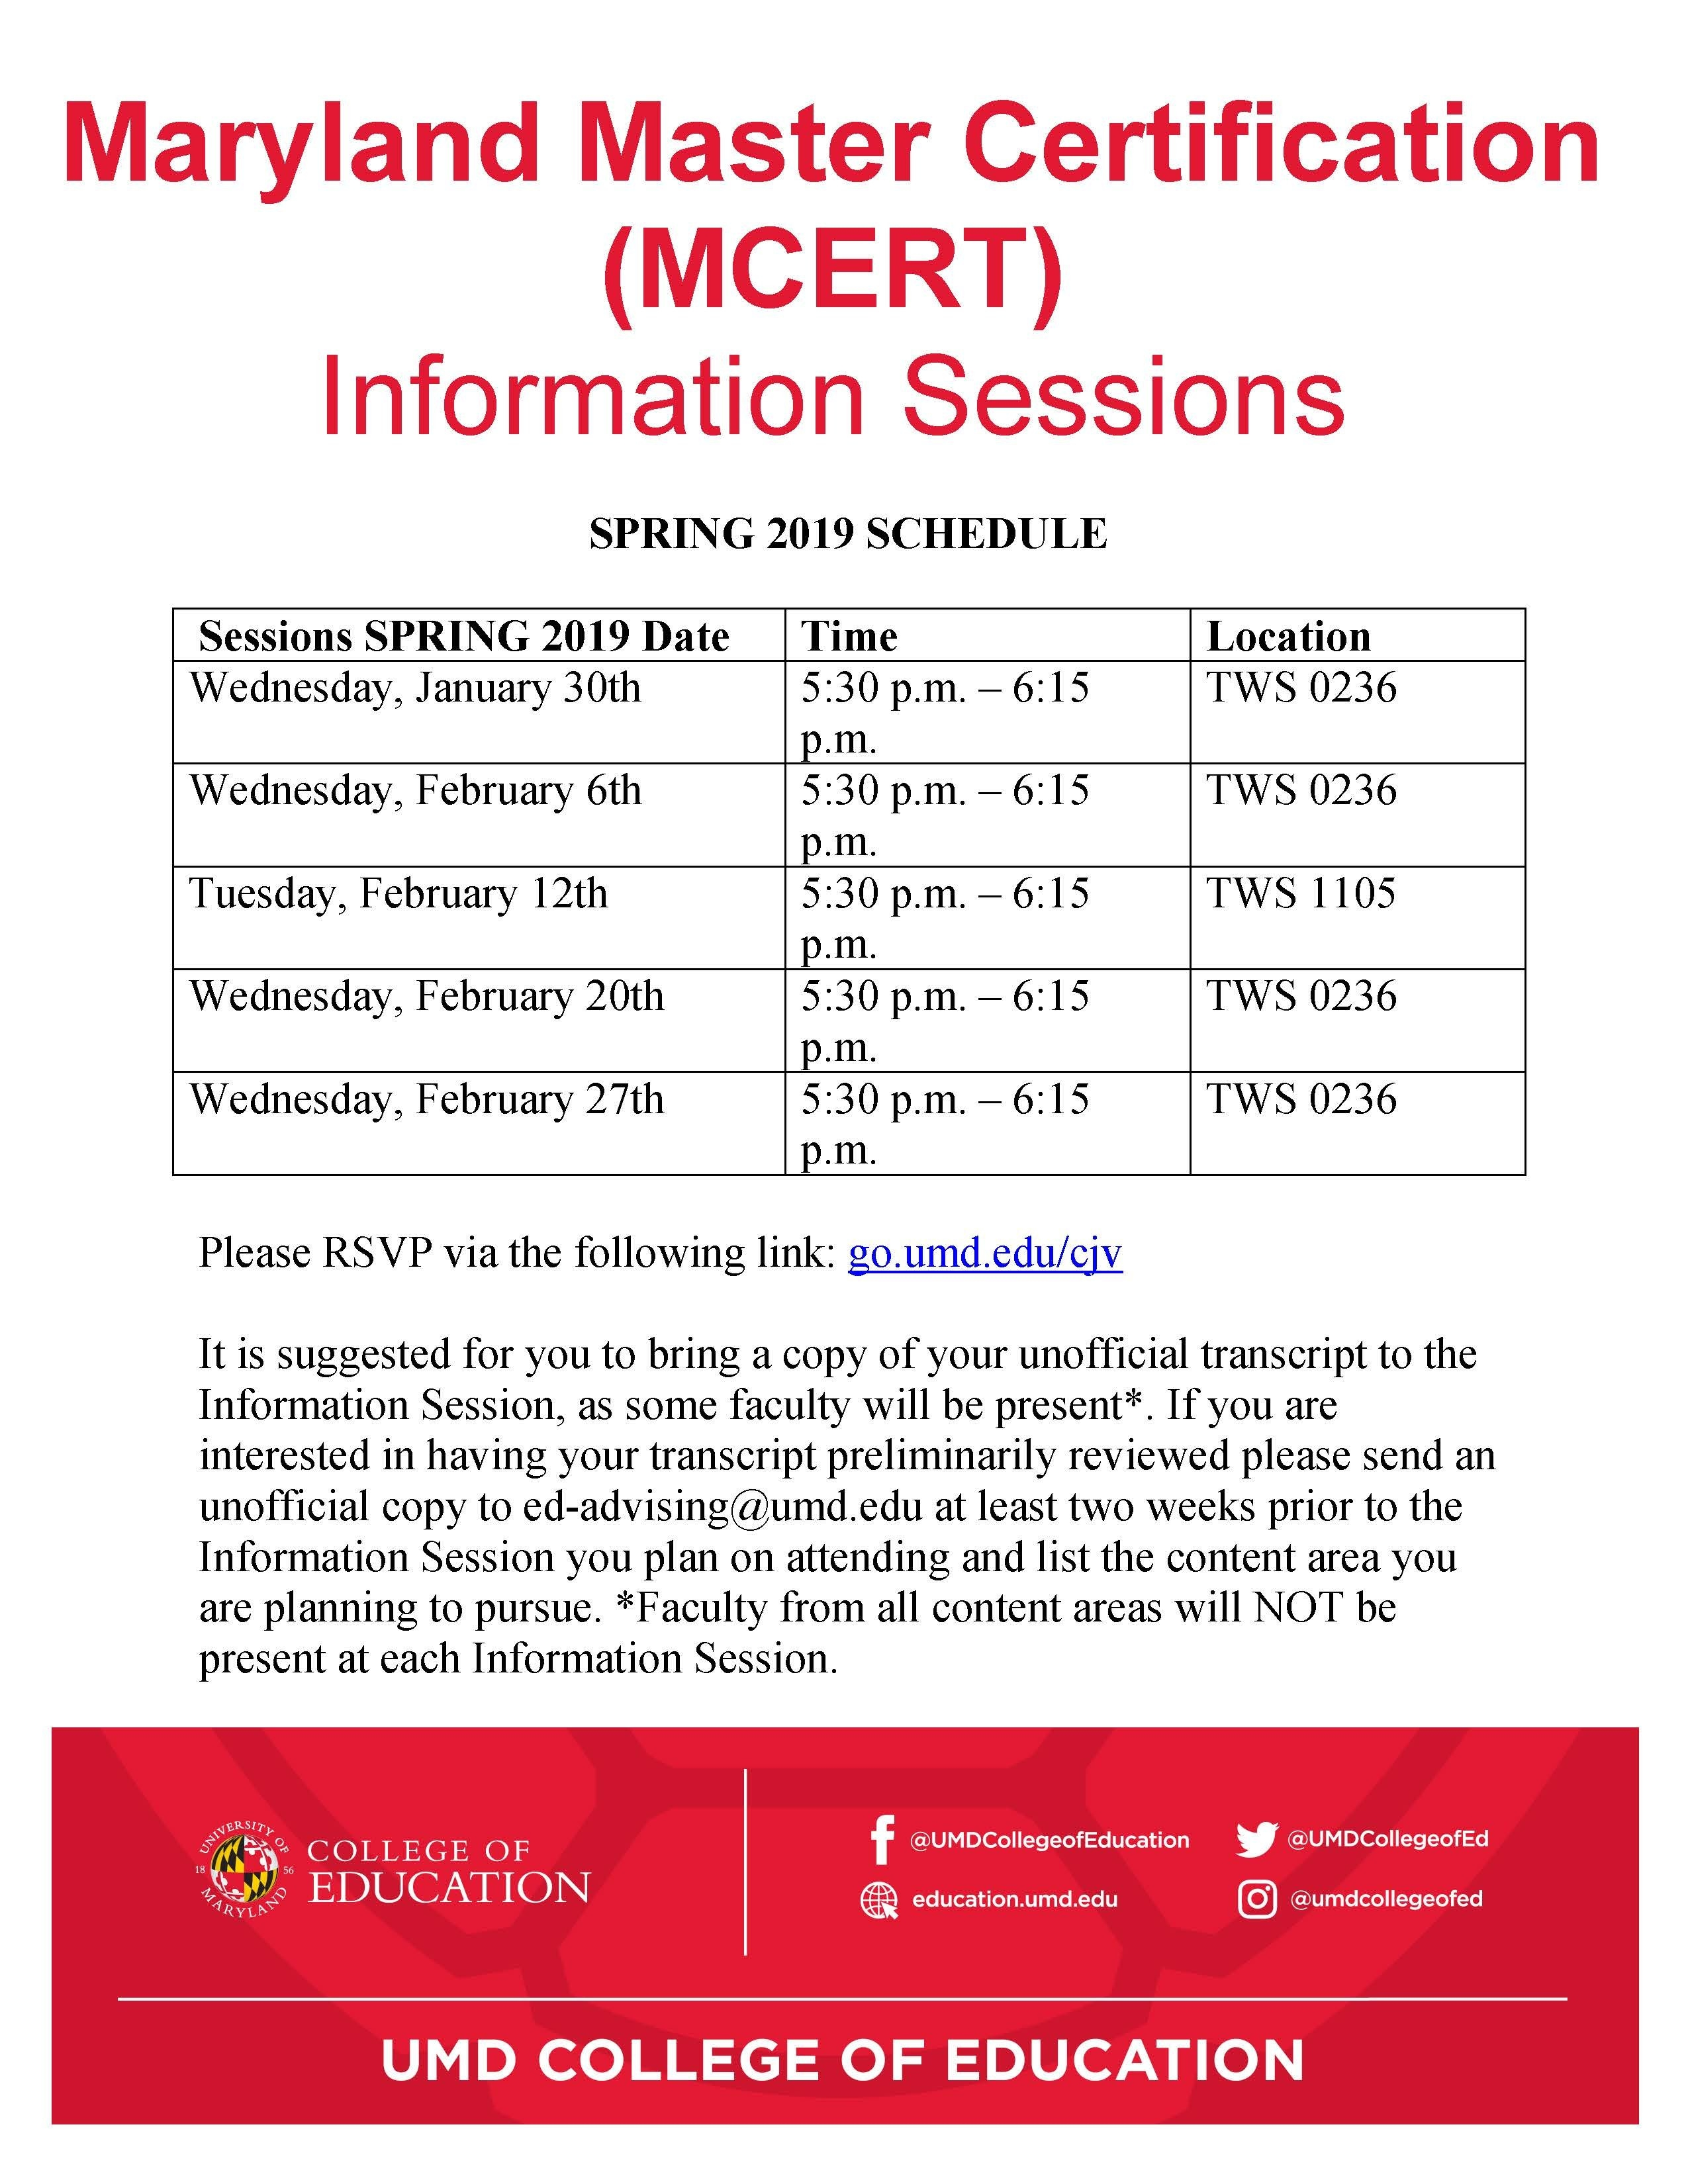 Maryland Master Certification (Mcert) Information Sessions | Umd Calendar 2019 Umd